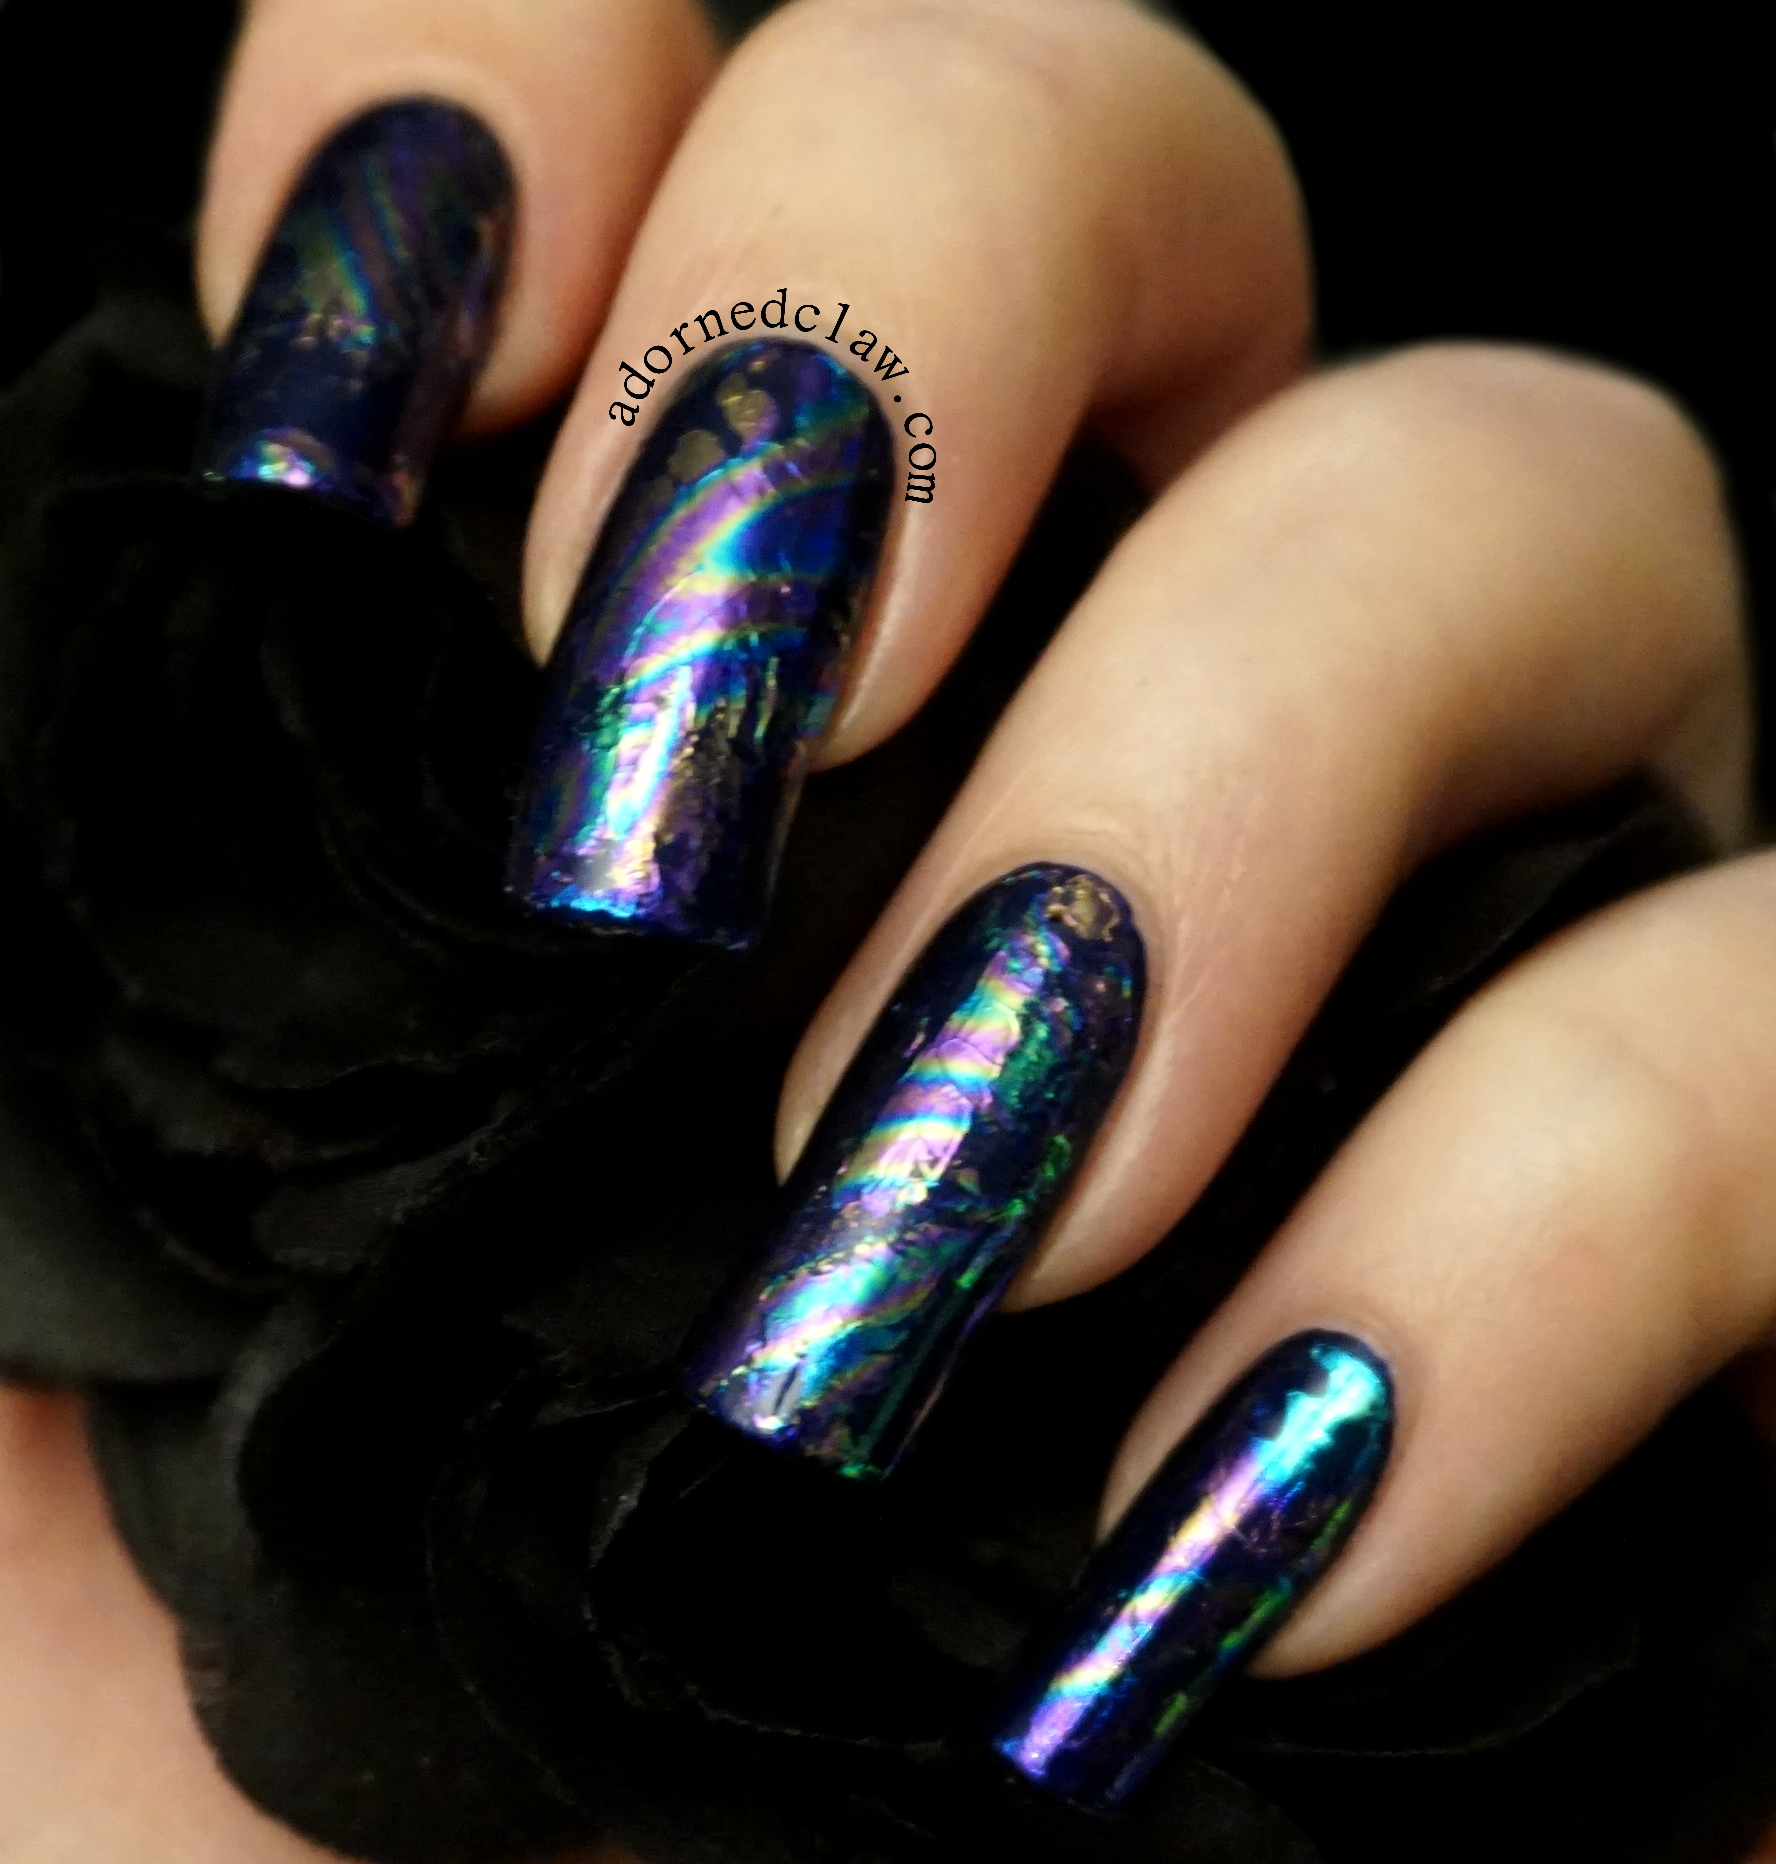 iridescent | The Adorned Claw